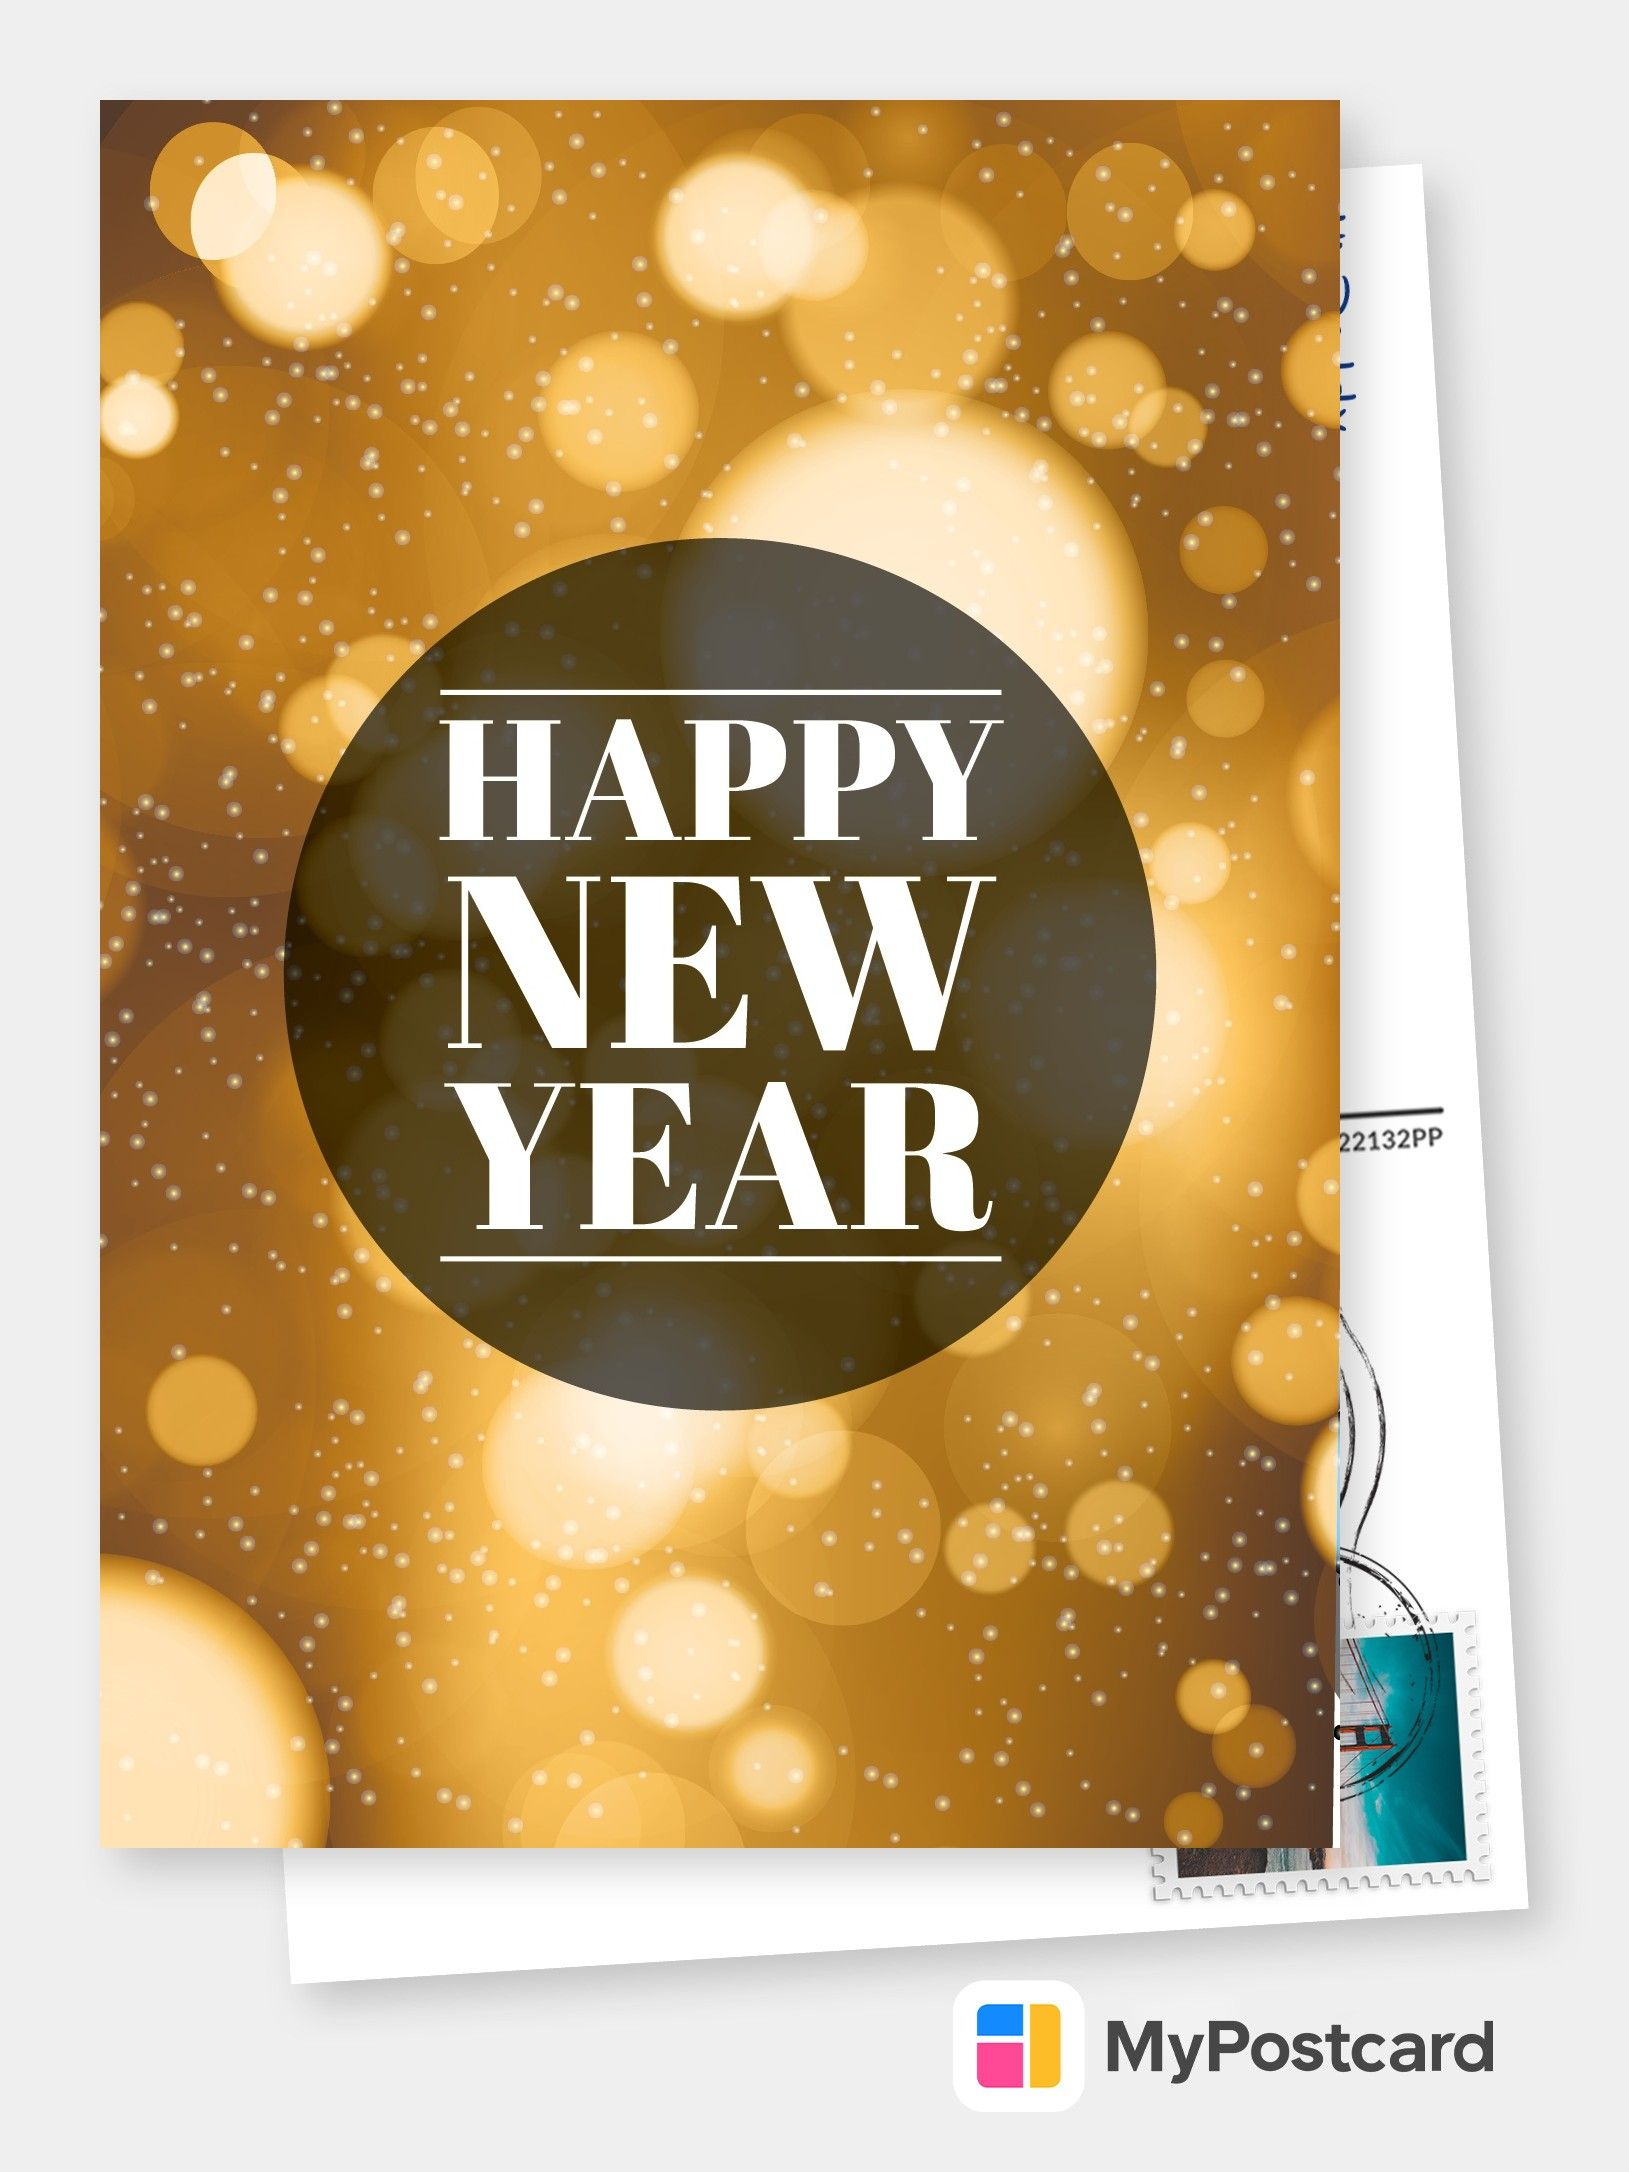 Printed Happy New Year Cards Online Free International Shipping Send Cards Online Mailed For You Internationally In 2020 Happy New Year Cards Happy New Year Greetings Happy New Year Background